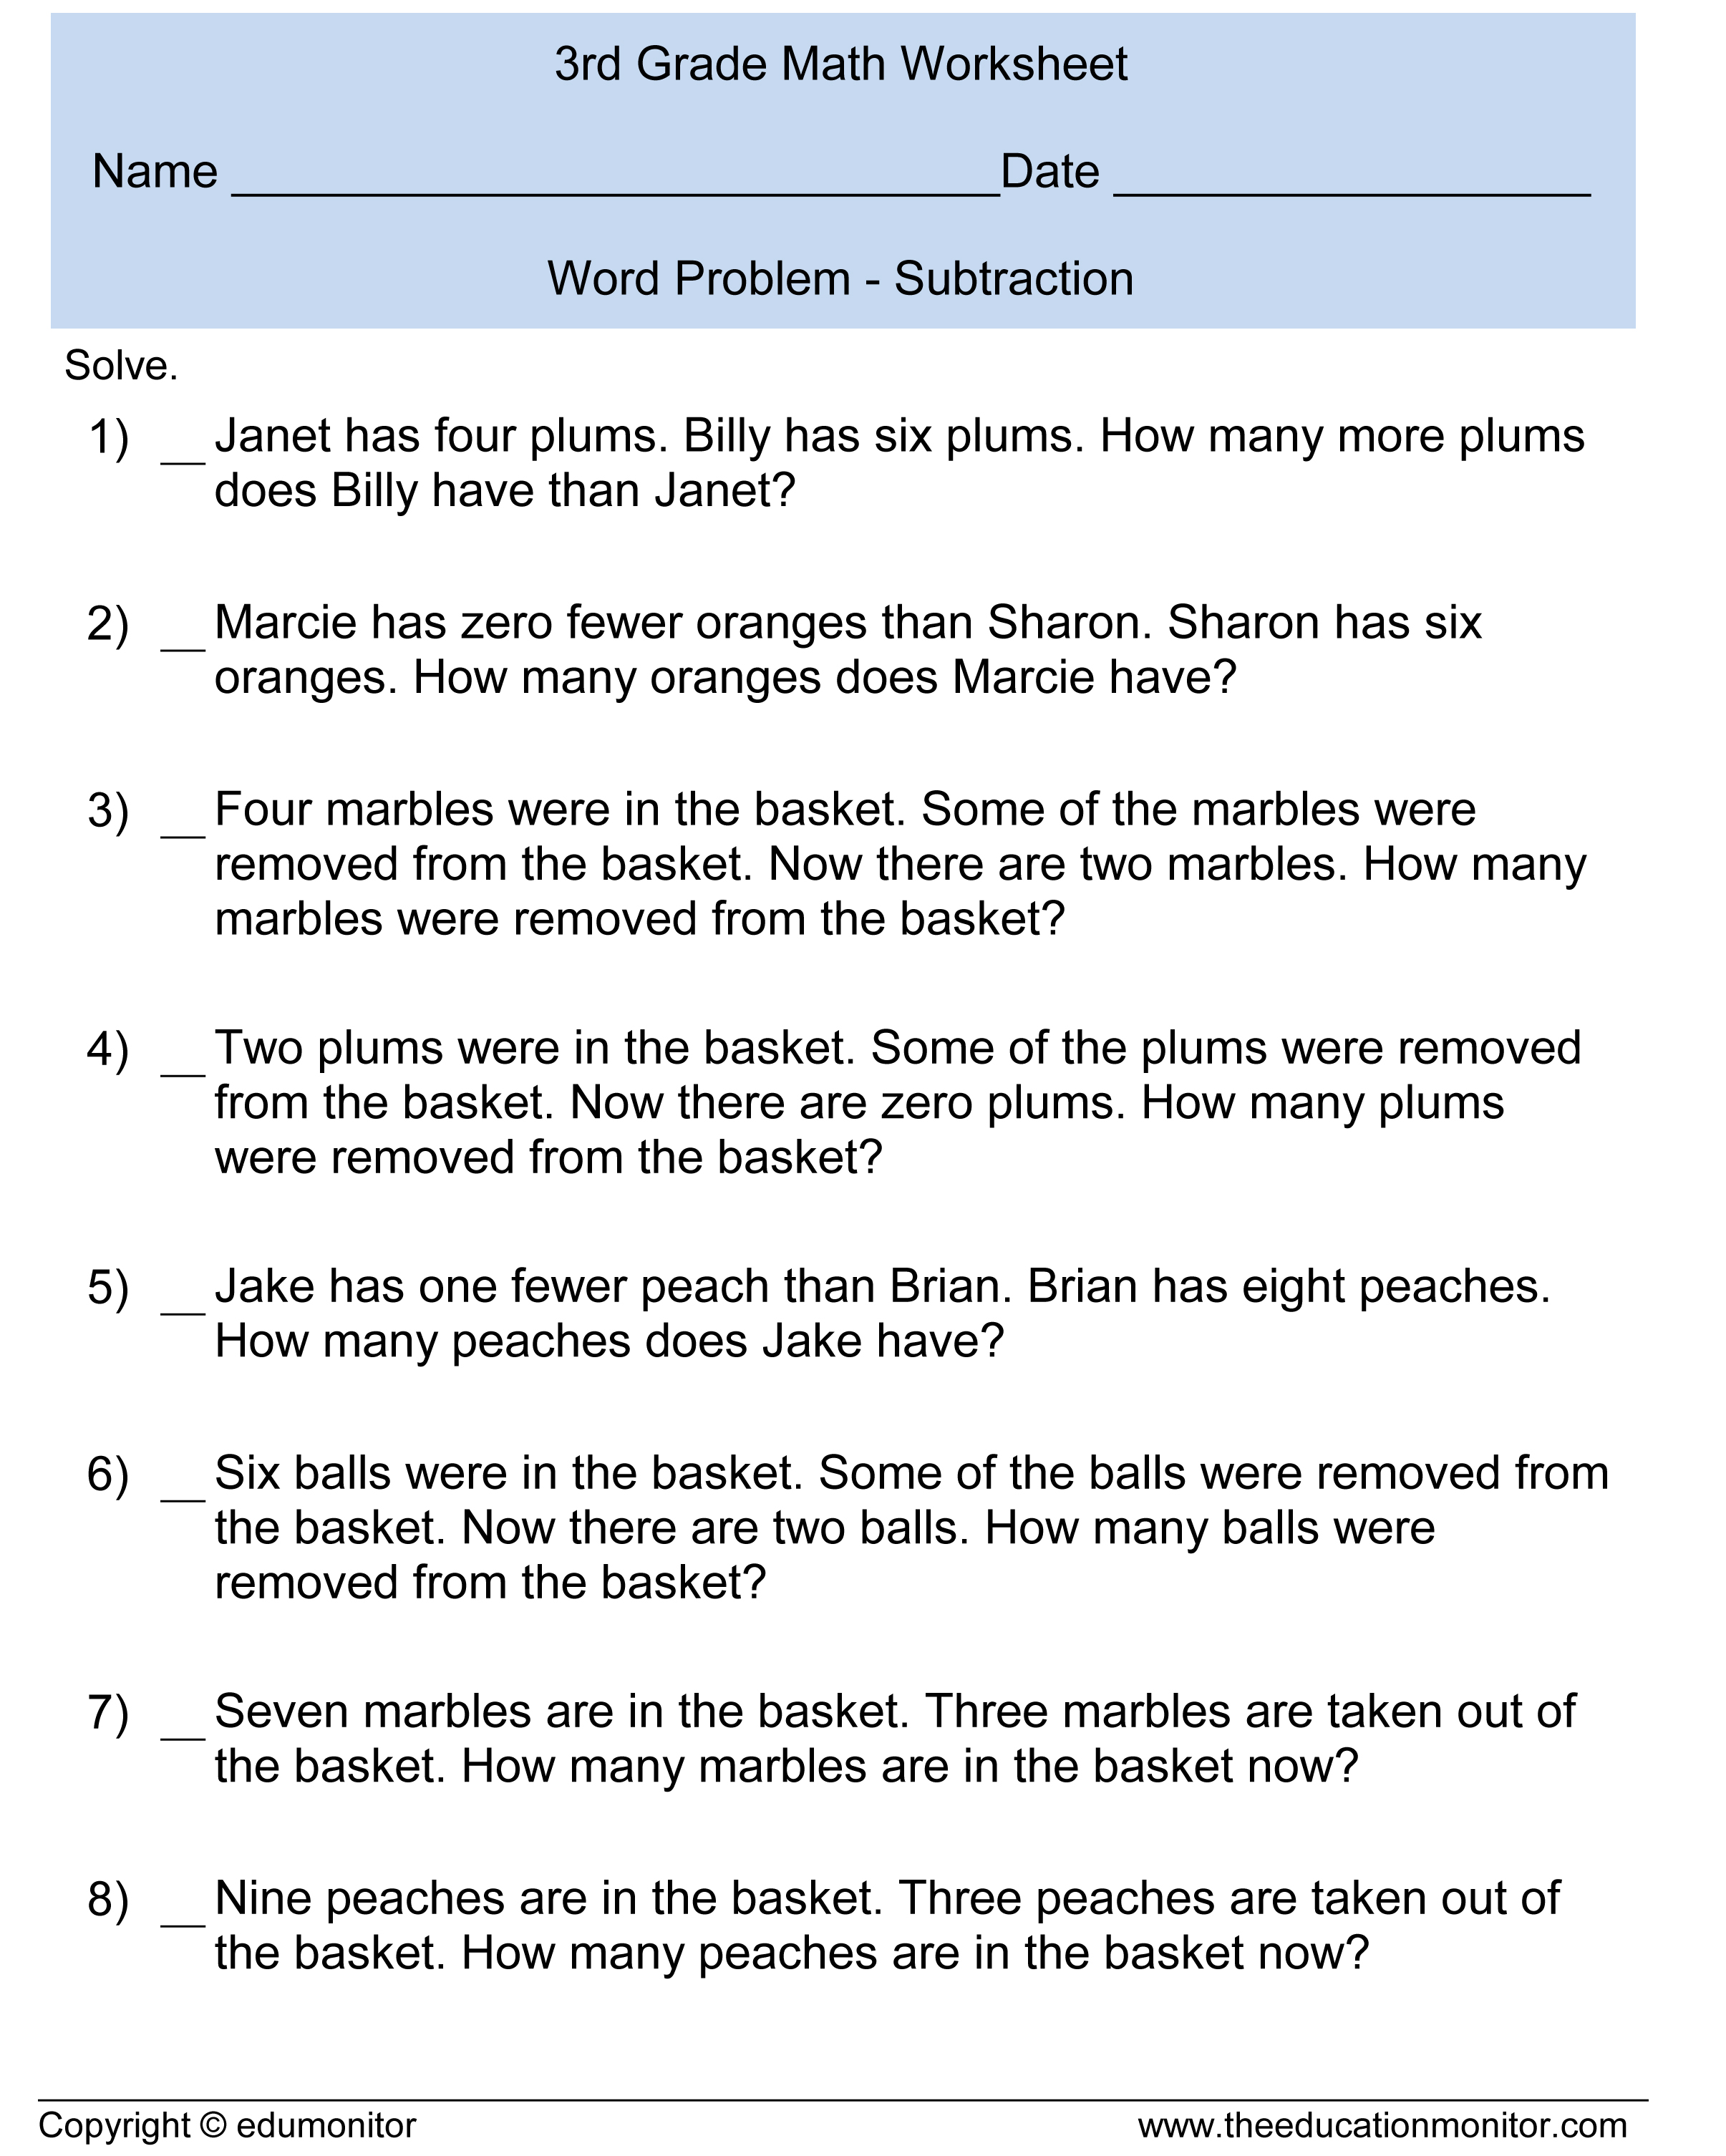 math worksheet : fraction word problems 2nd grade worksheets  guided reading  : Fraction Word Problems Worksheets 7th Grade